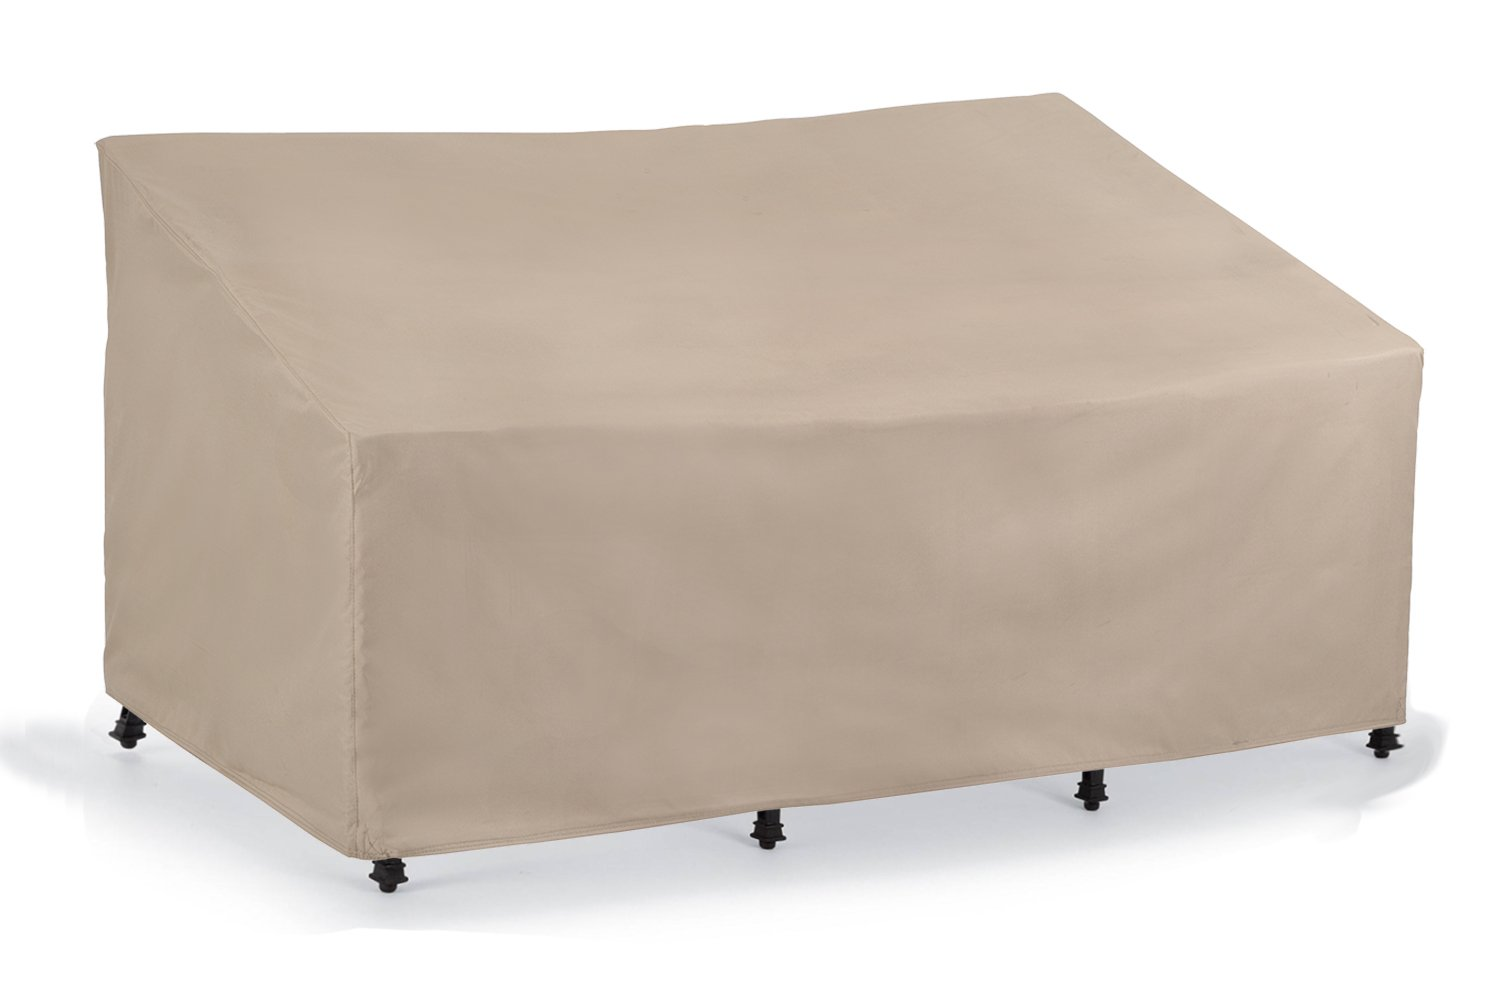 SunPatio Sofa Cover, Lightweight, Water Resistant, Eco-Friendly, Helpful Air Vent, All Weather Protection, Beige, 80'' L x 36'' W x 30'' H/20 H